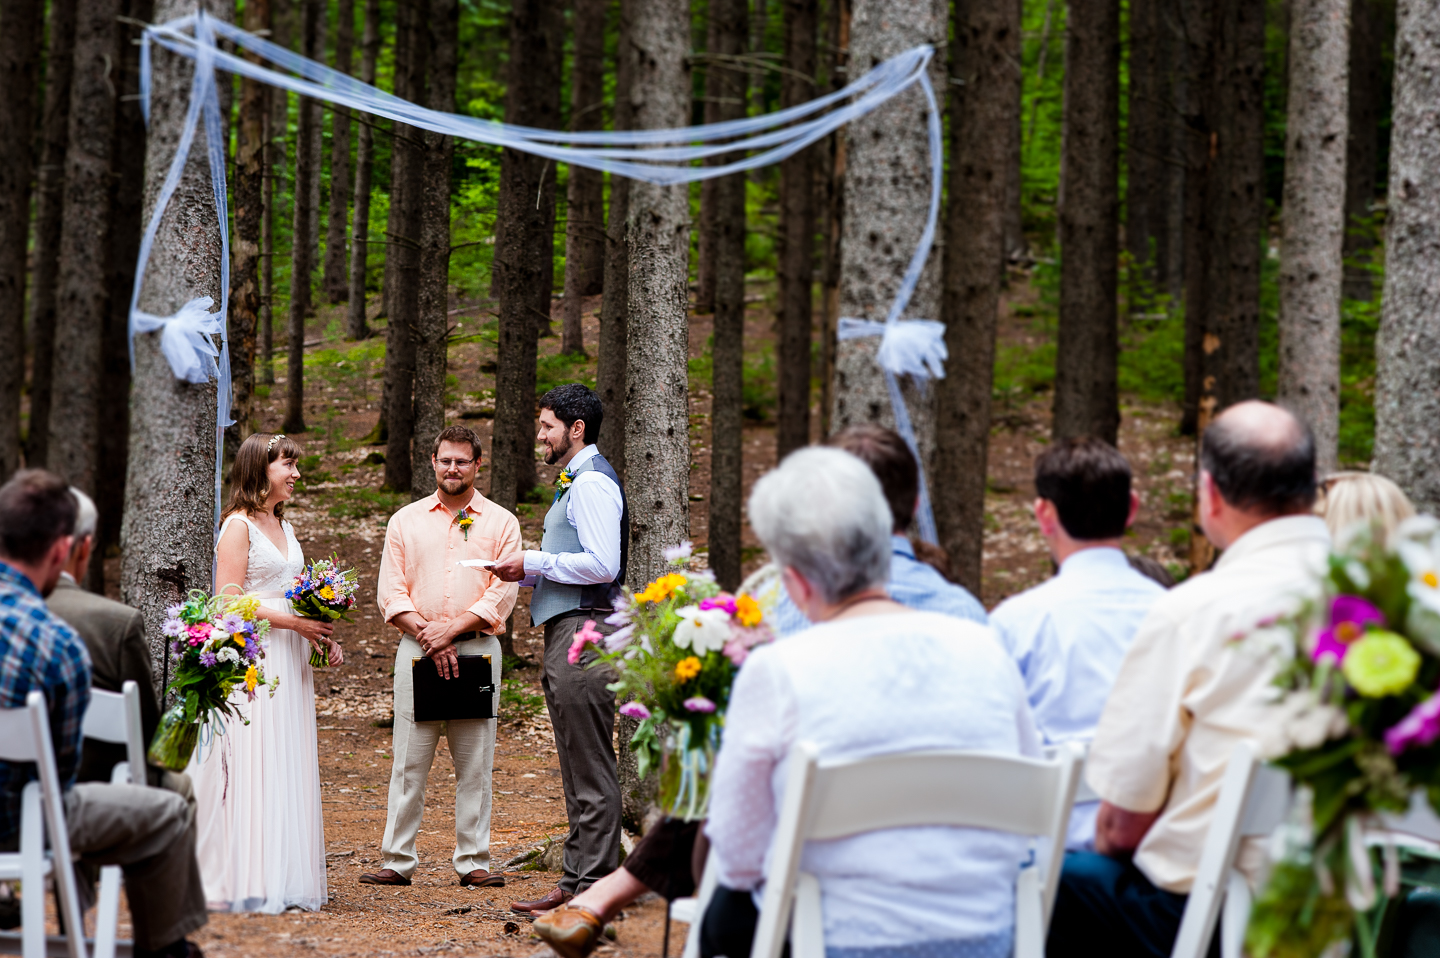 The bride and groom saying their vows during their gorgeous ceremony in the middle of the woods